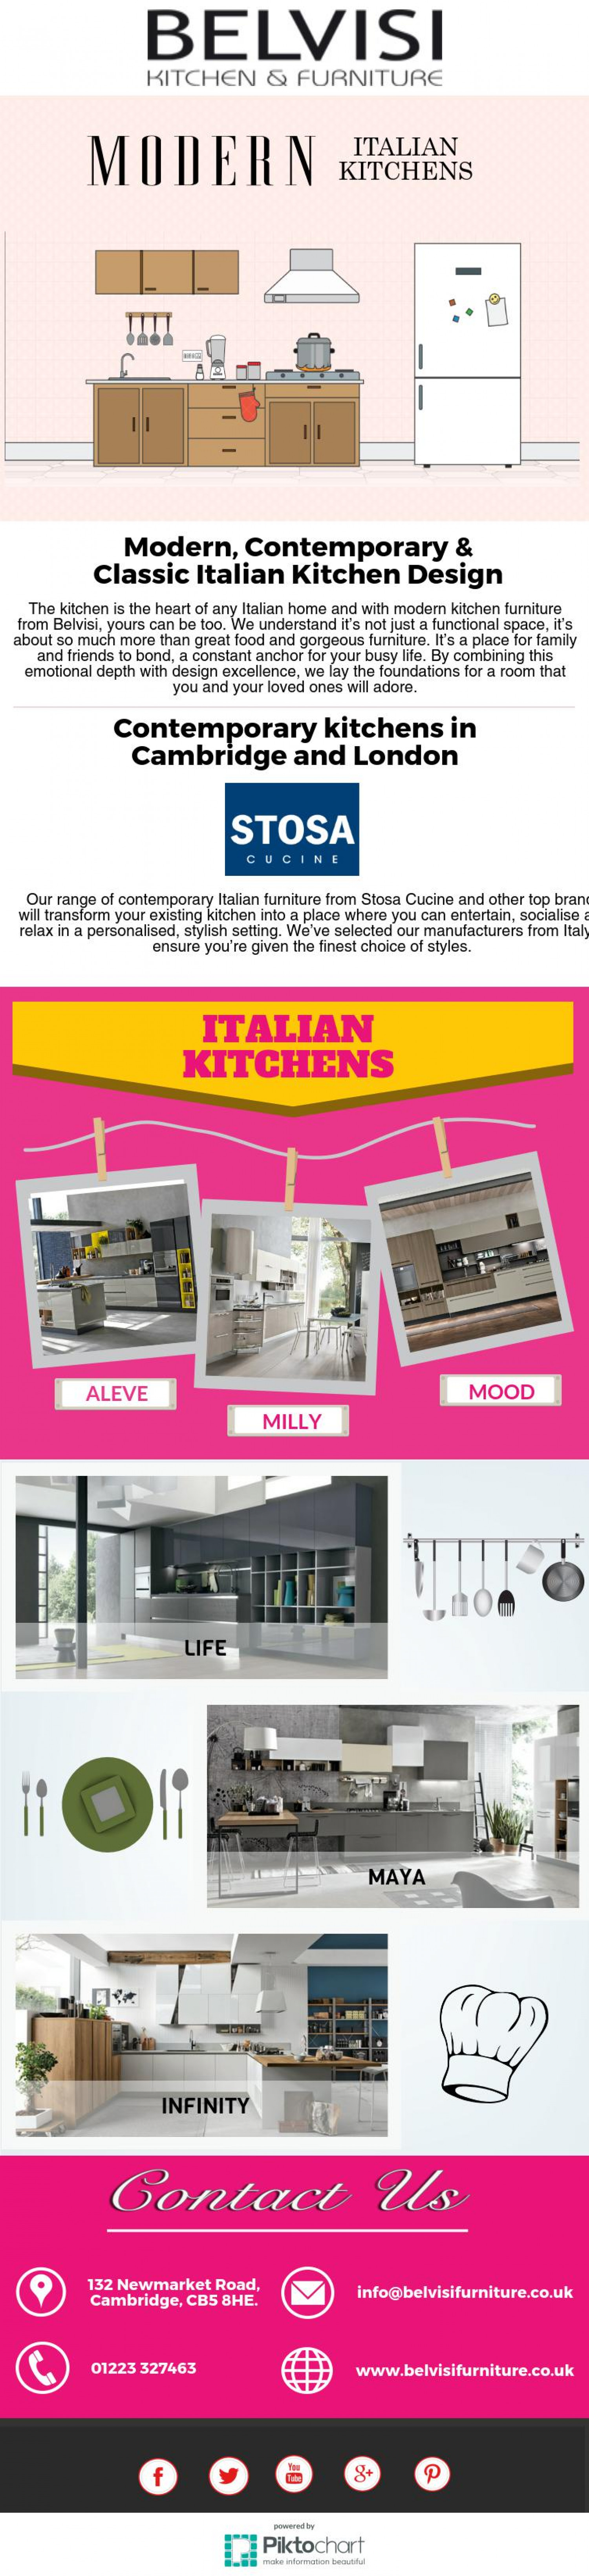 Modern Italian Kitchens Infographic